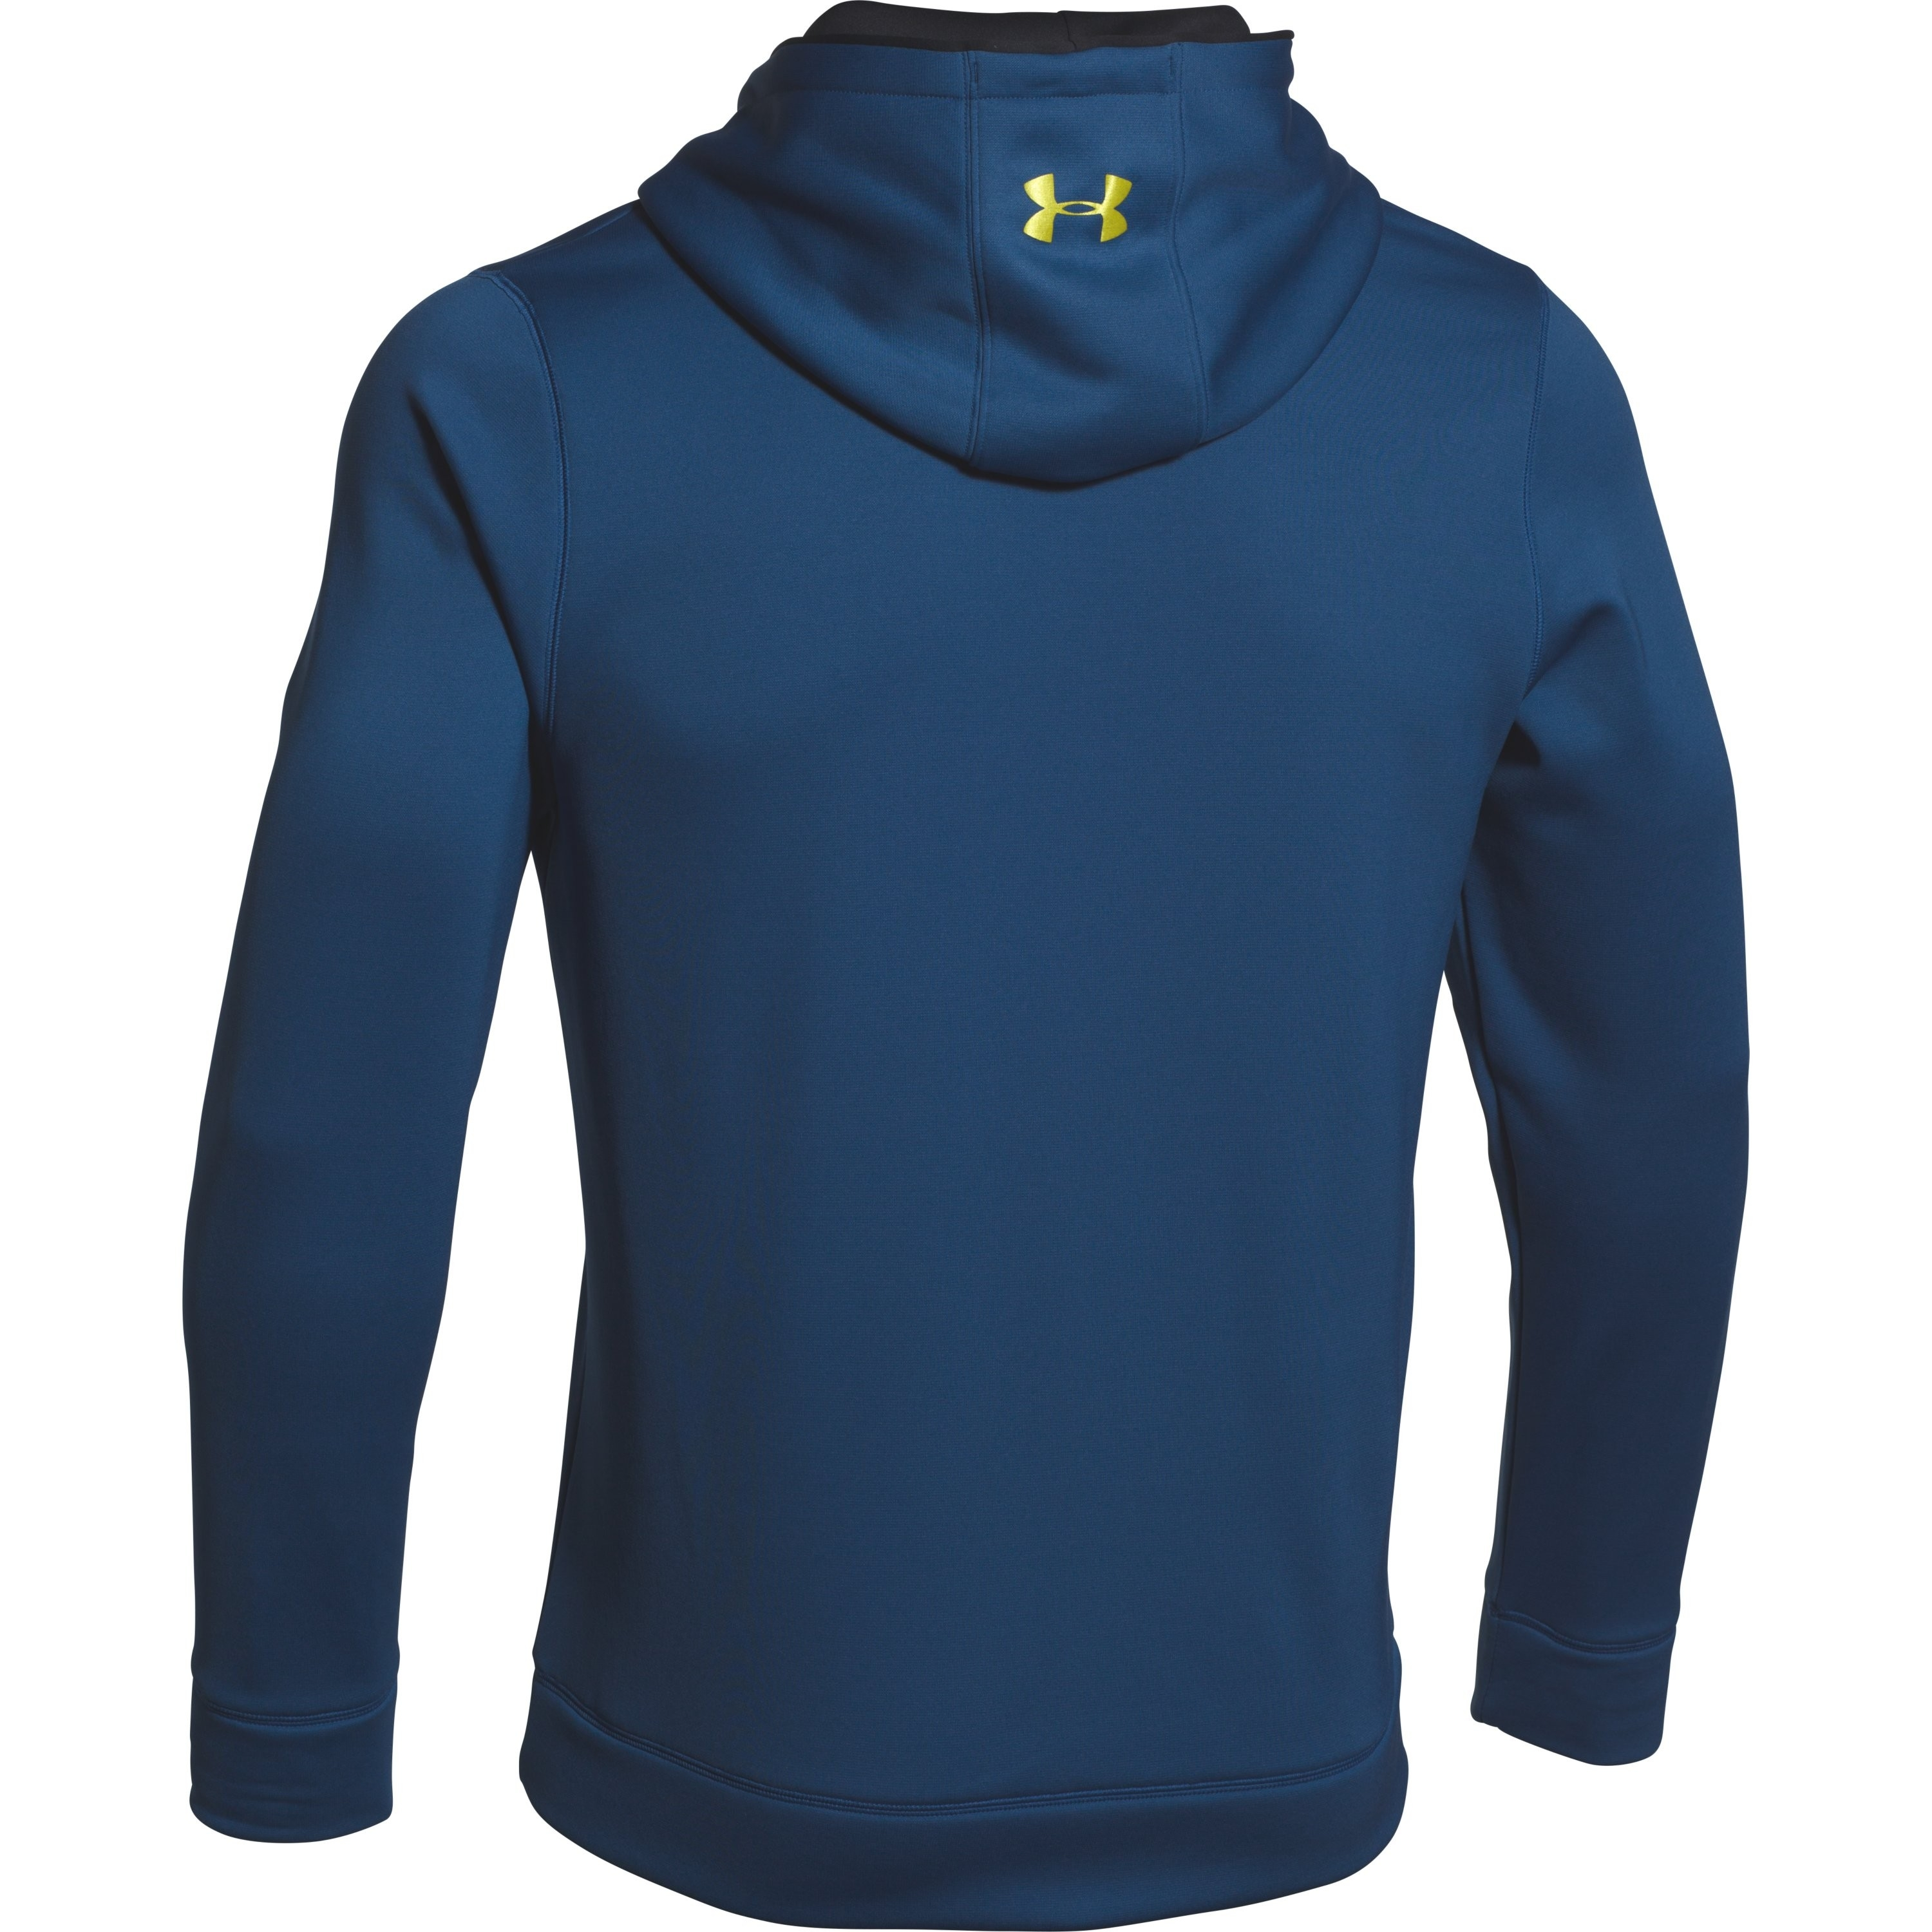 Under armour logo hoodie